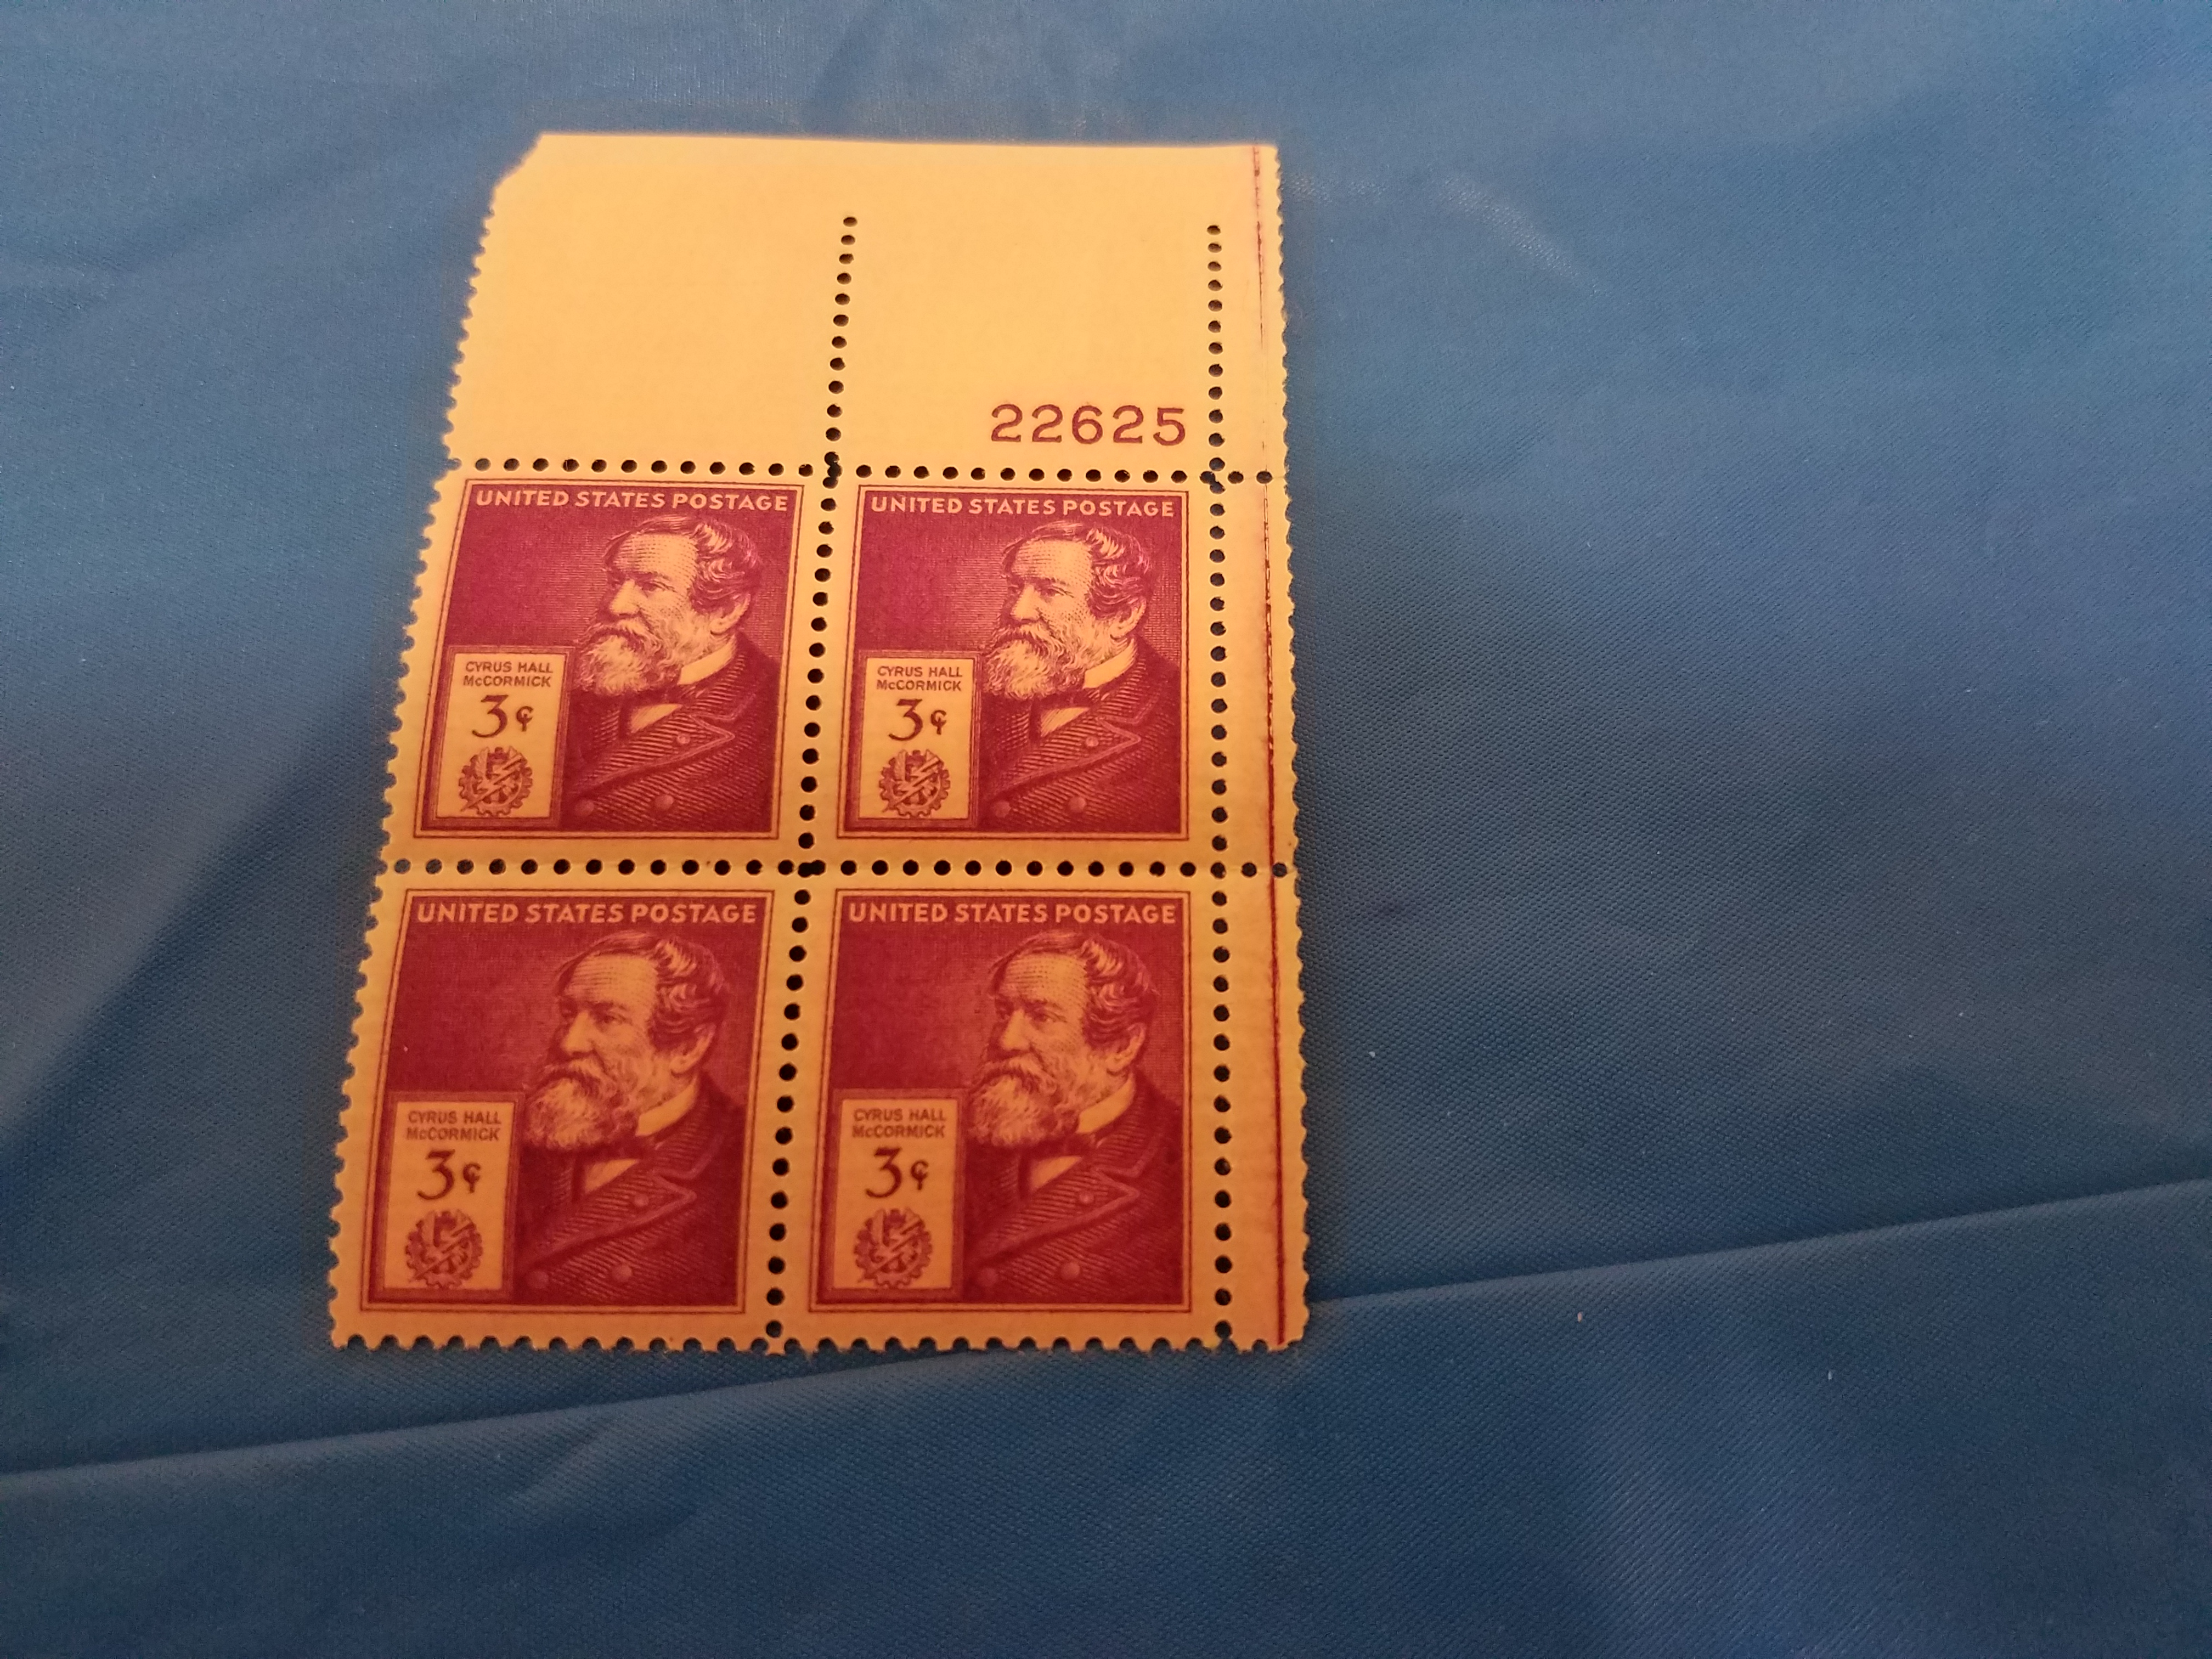 Lot 33 - 3 Cent Stamps